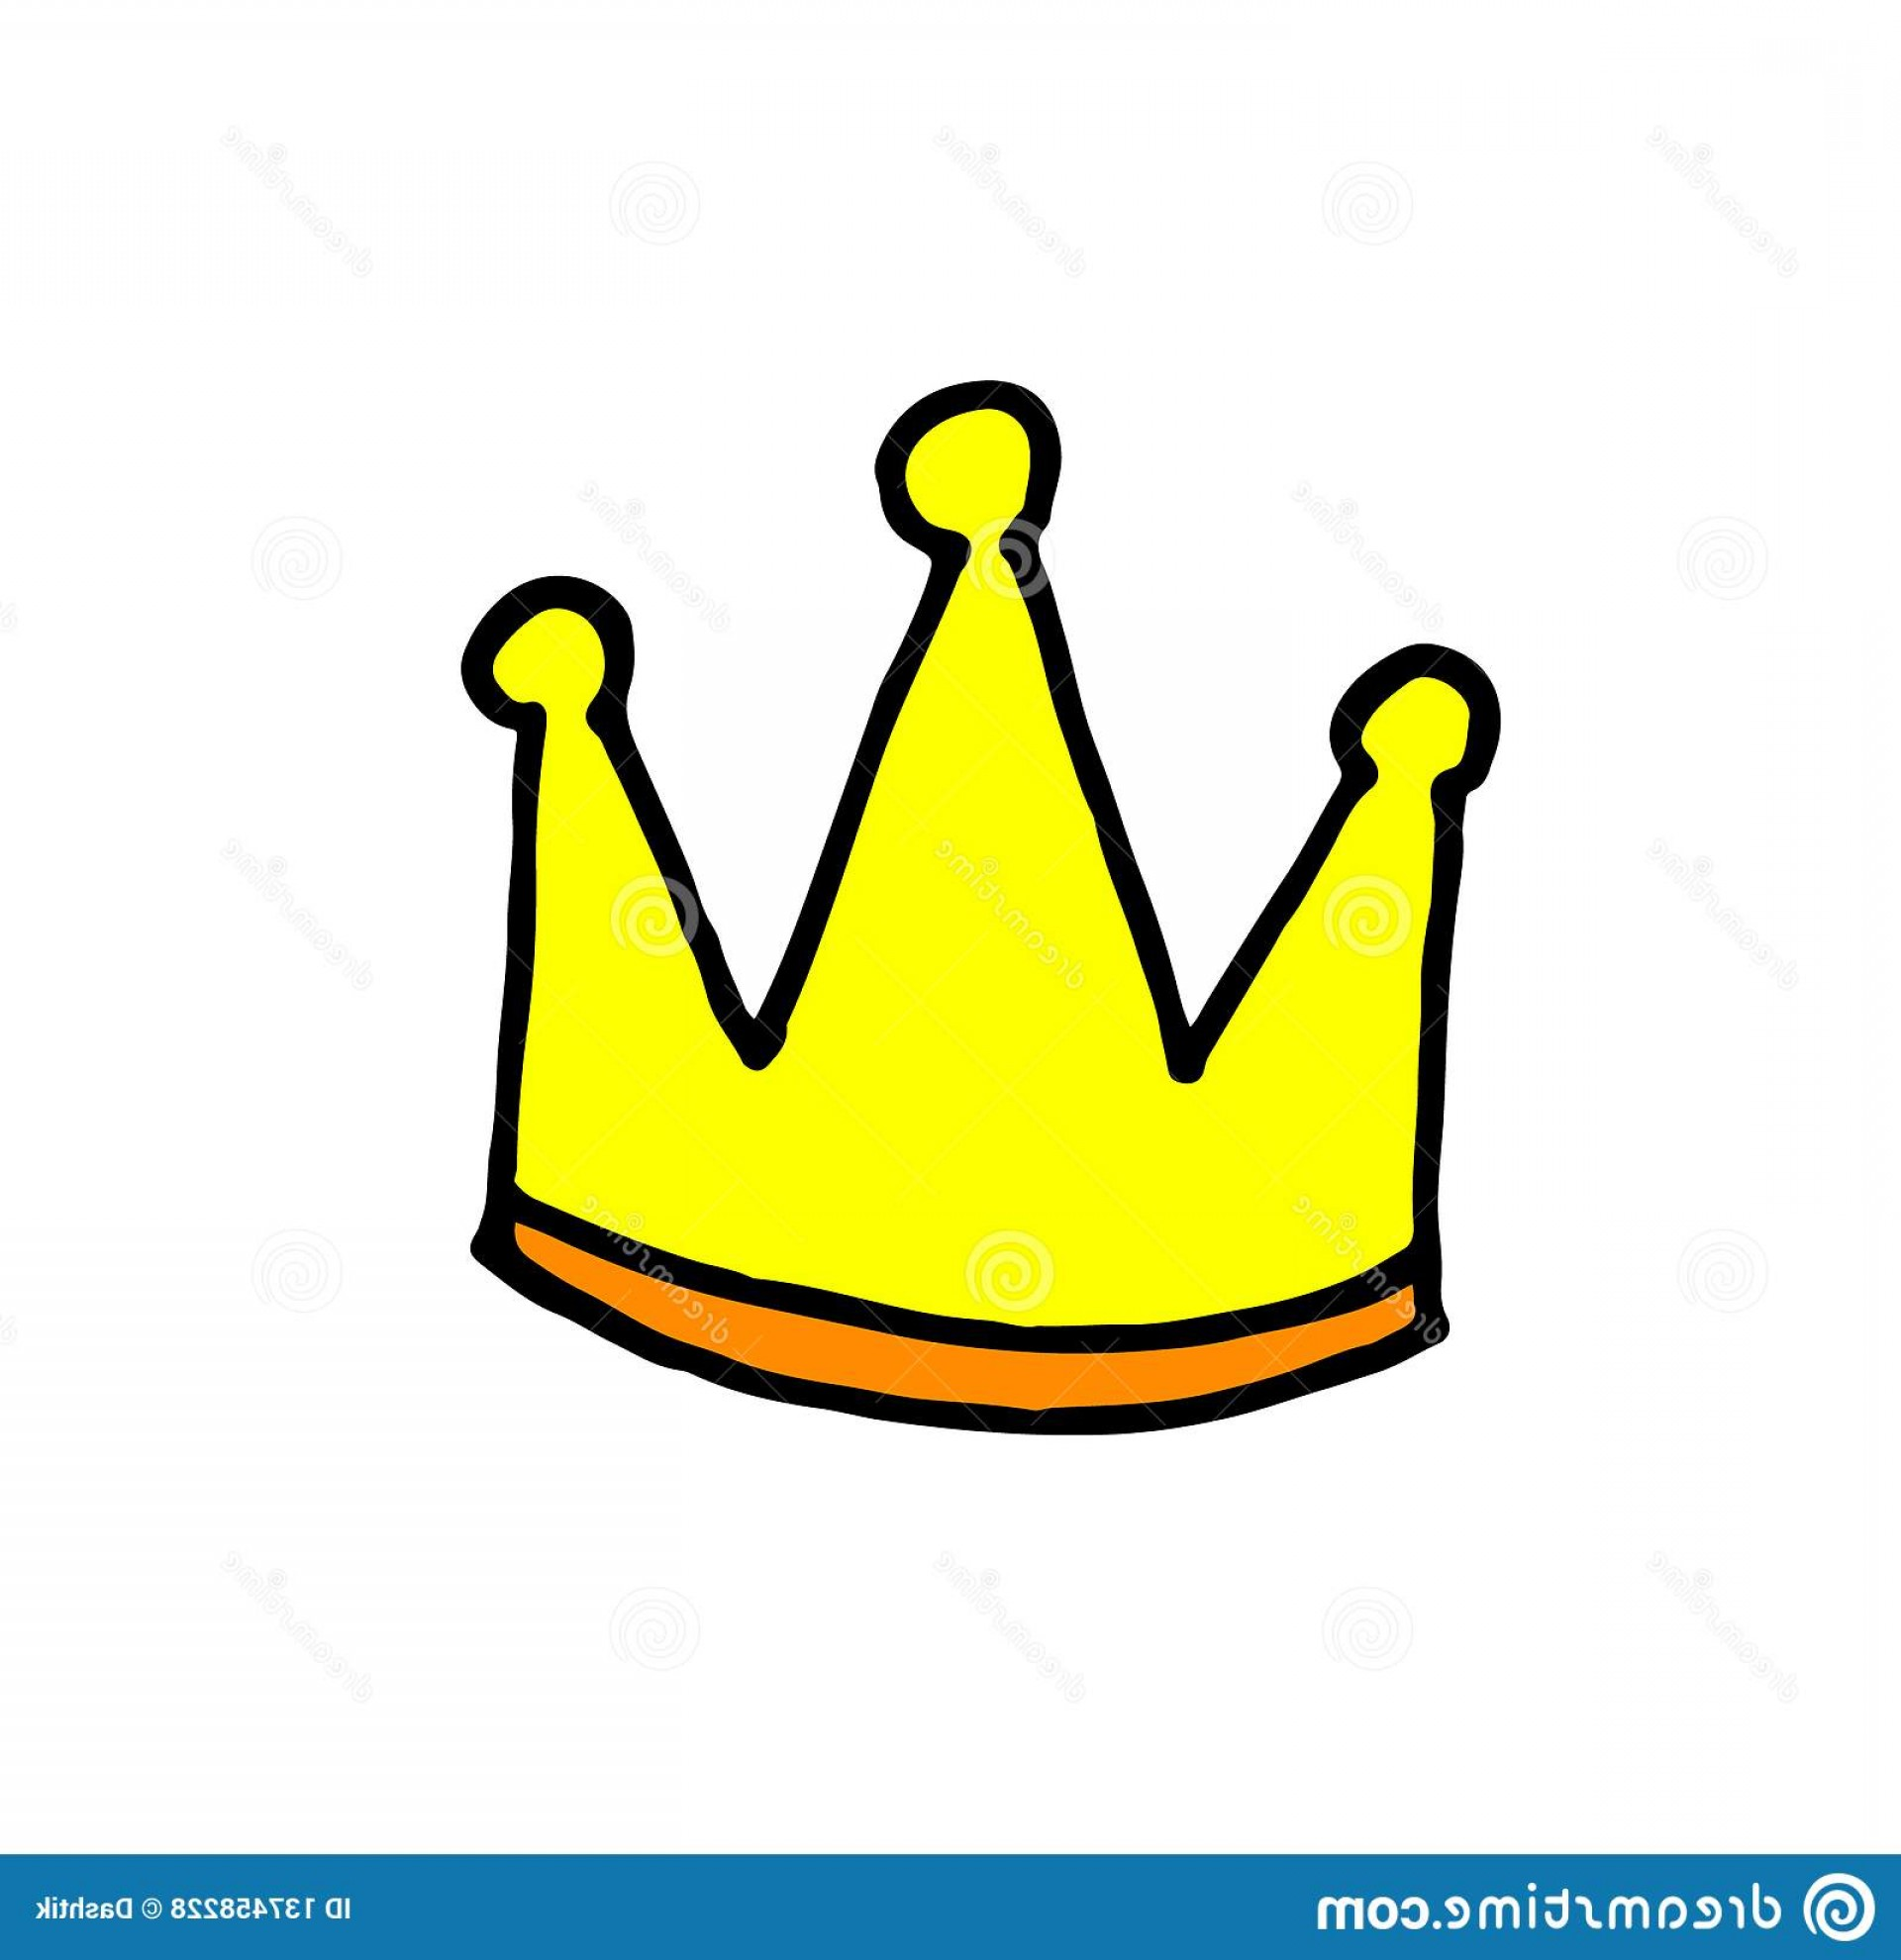 Transparent Queen Crown Vector: Vector King Queen Transparent Doodle Crown